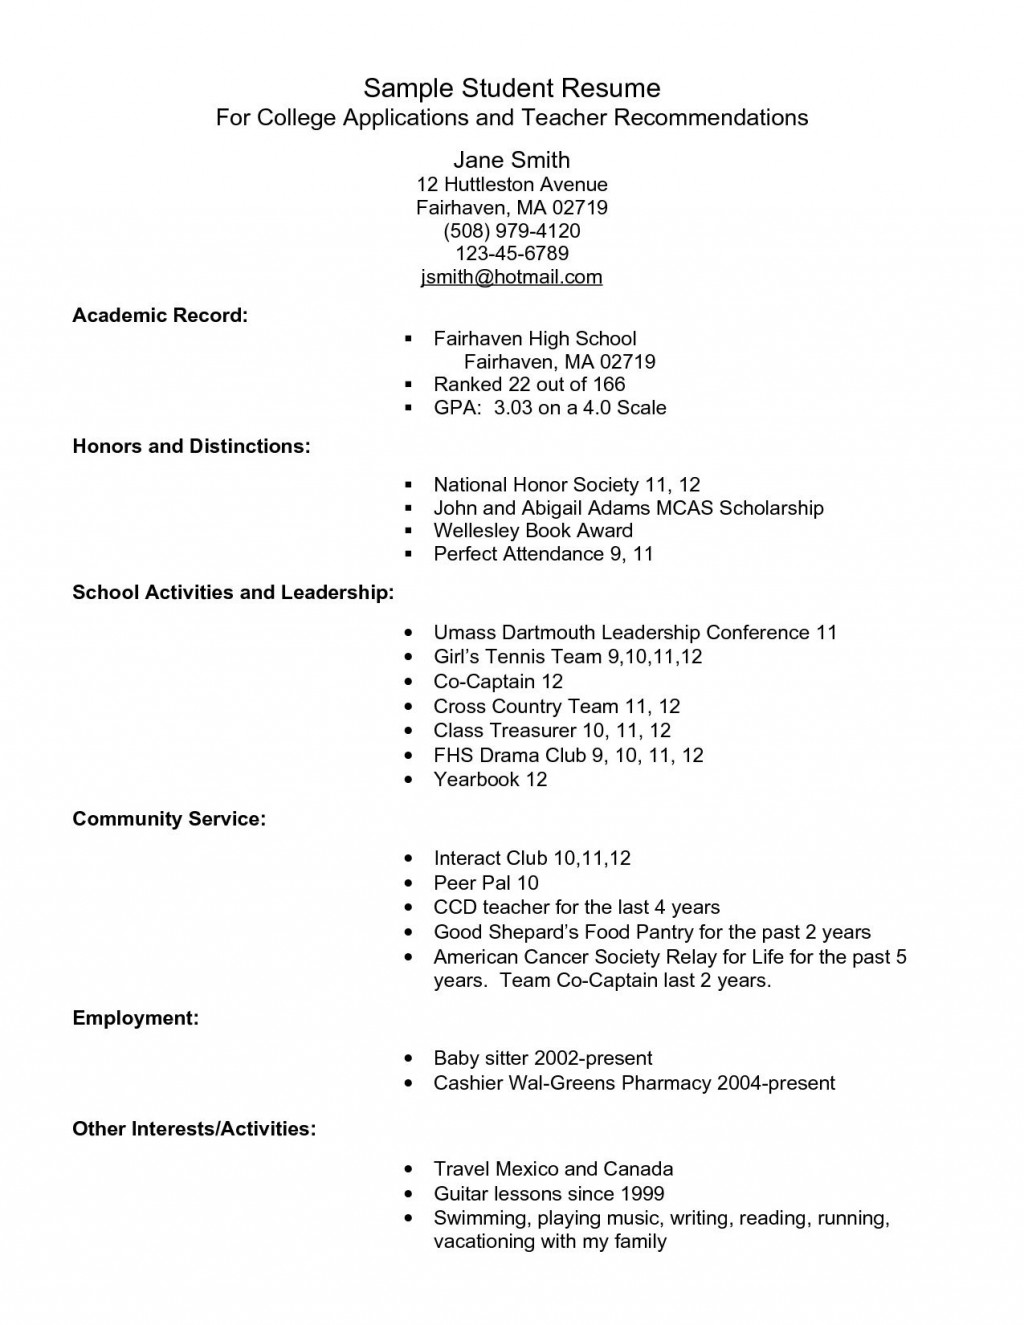 002 Awful Resume For College Application Template Photo  TemplatesLarge